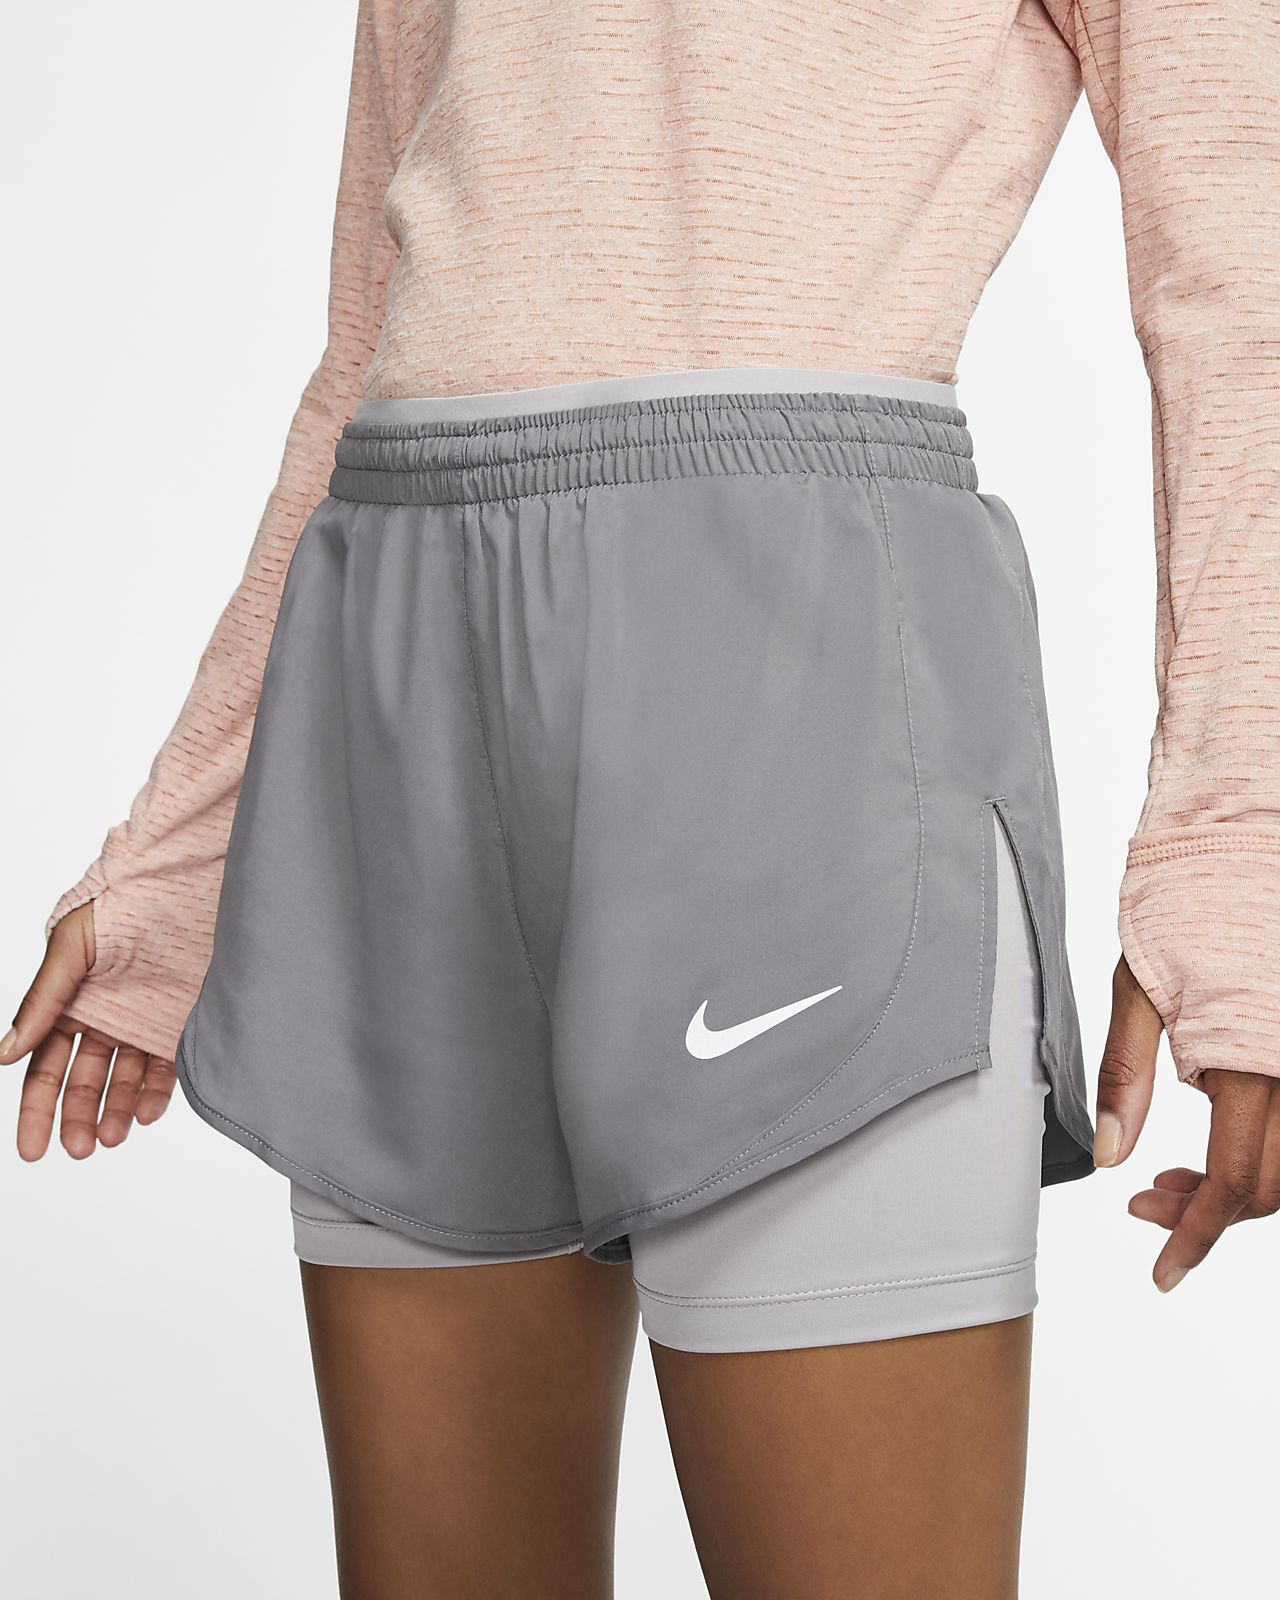 Nike Tempo Lux Women's 2-in-1 Running Shorts